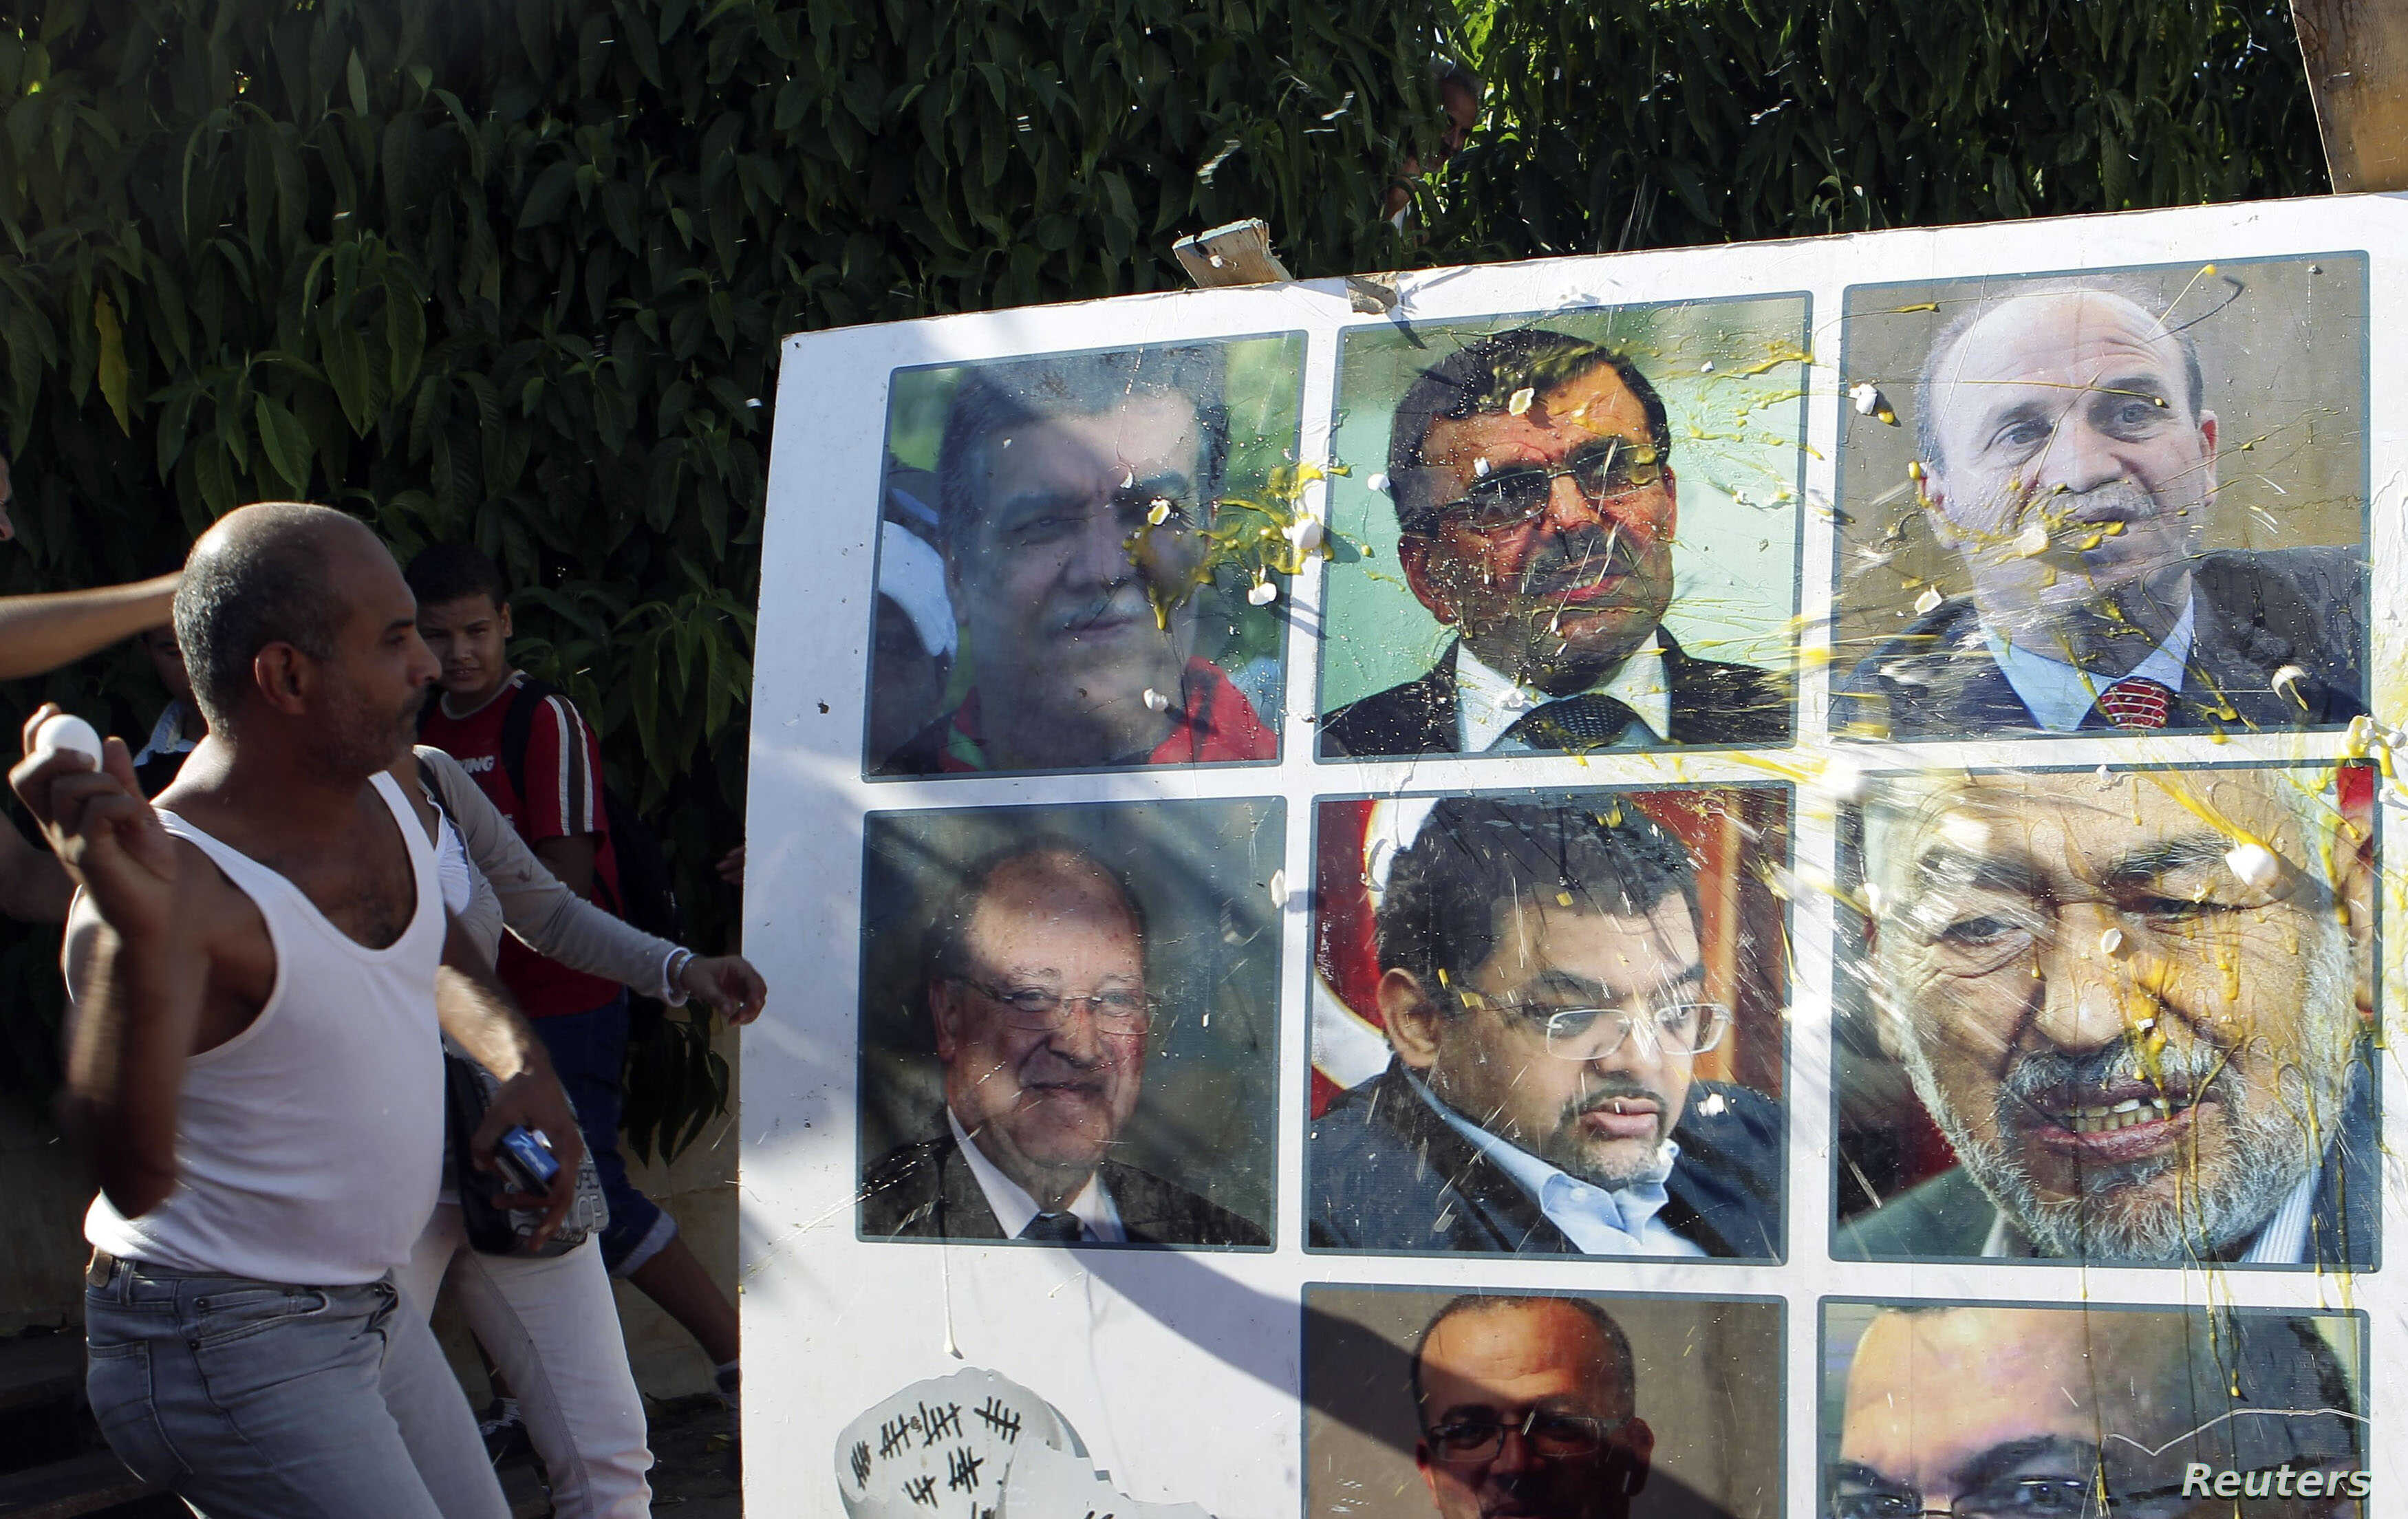 An anti-government protester throws an egg at a poster of Tunisian politicians, including Prime Minister Ali Larayedh (top row, C) and leader of the Islamist Ennahda movement Rached Ghannouchi (centre row, R) during a demonstration in Tunis October 2